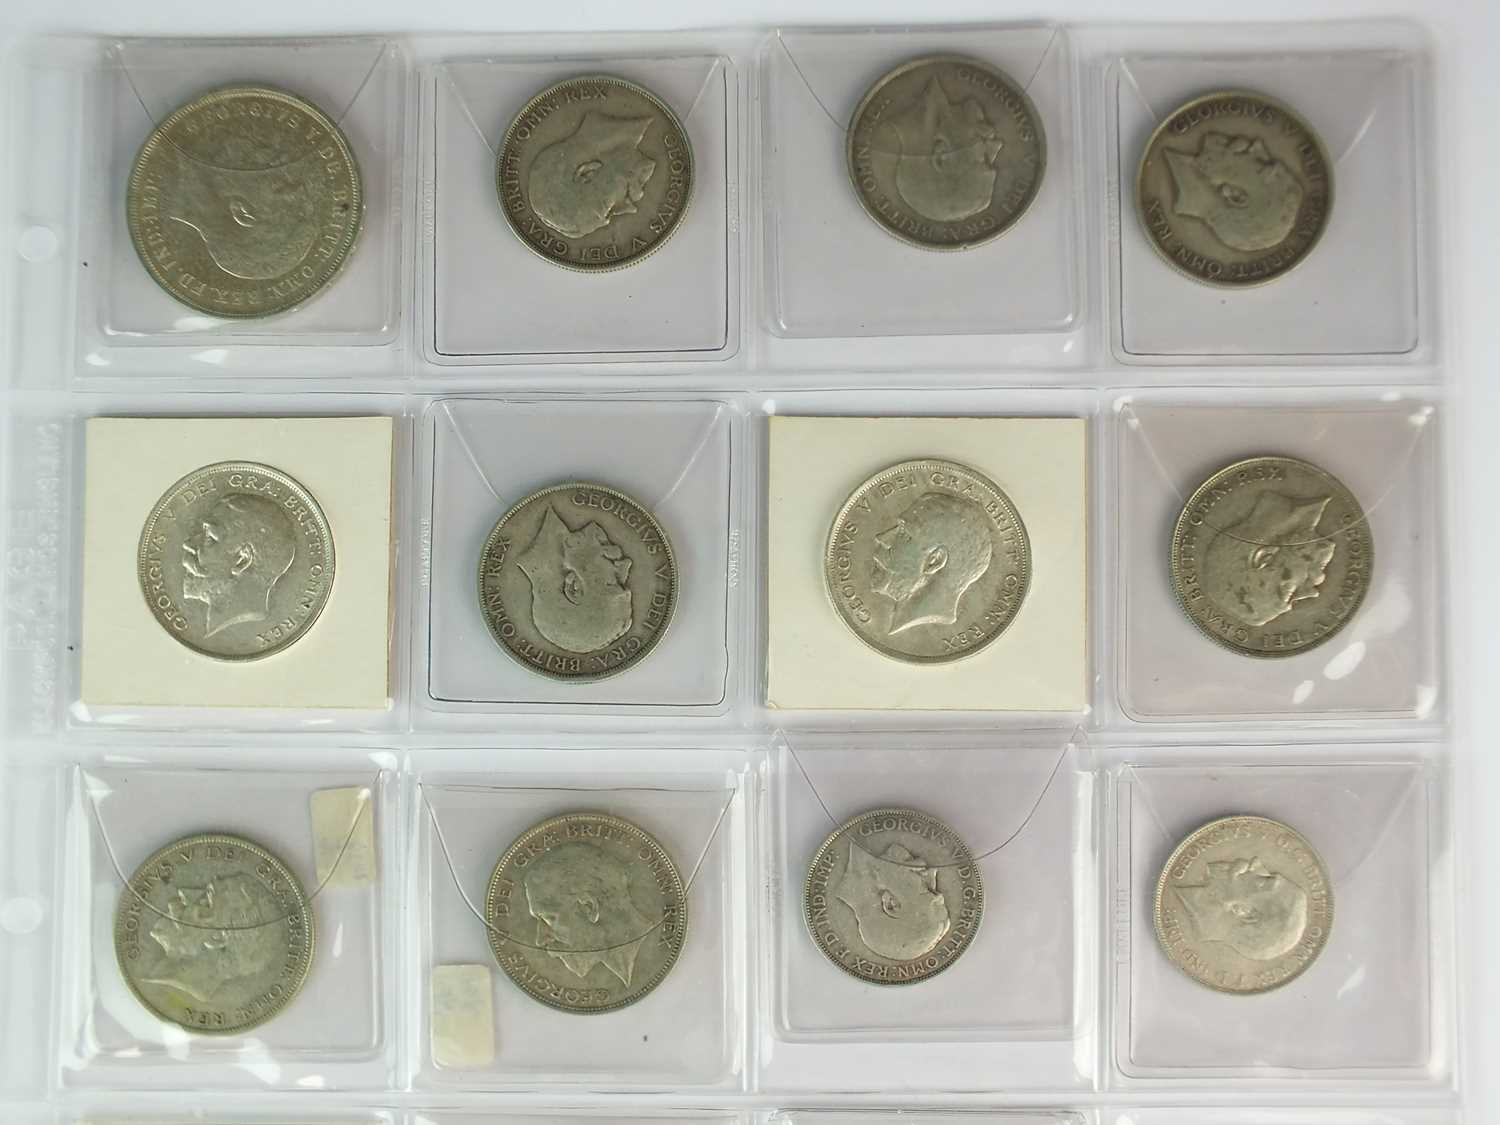 A collection of George V silver coinage